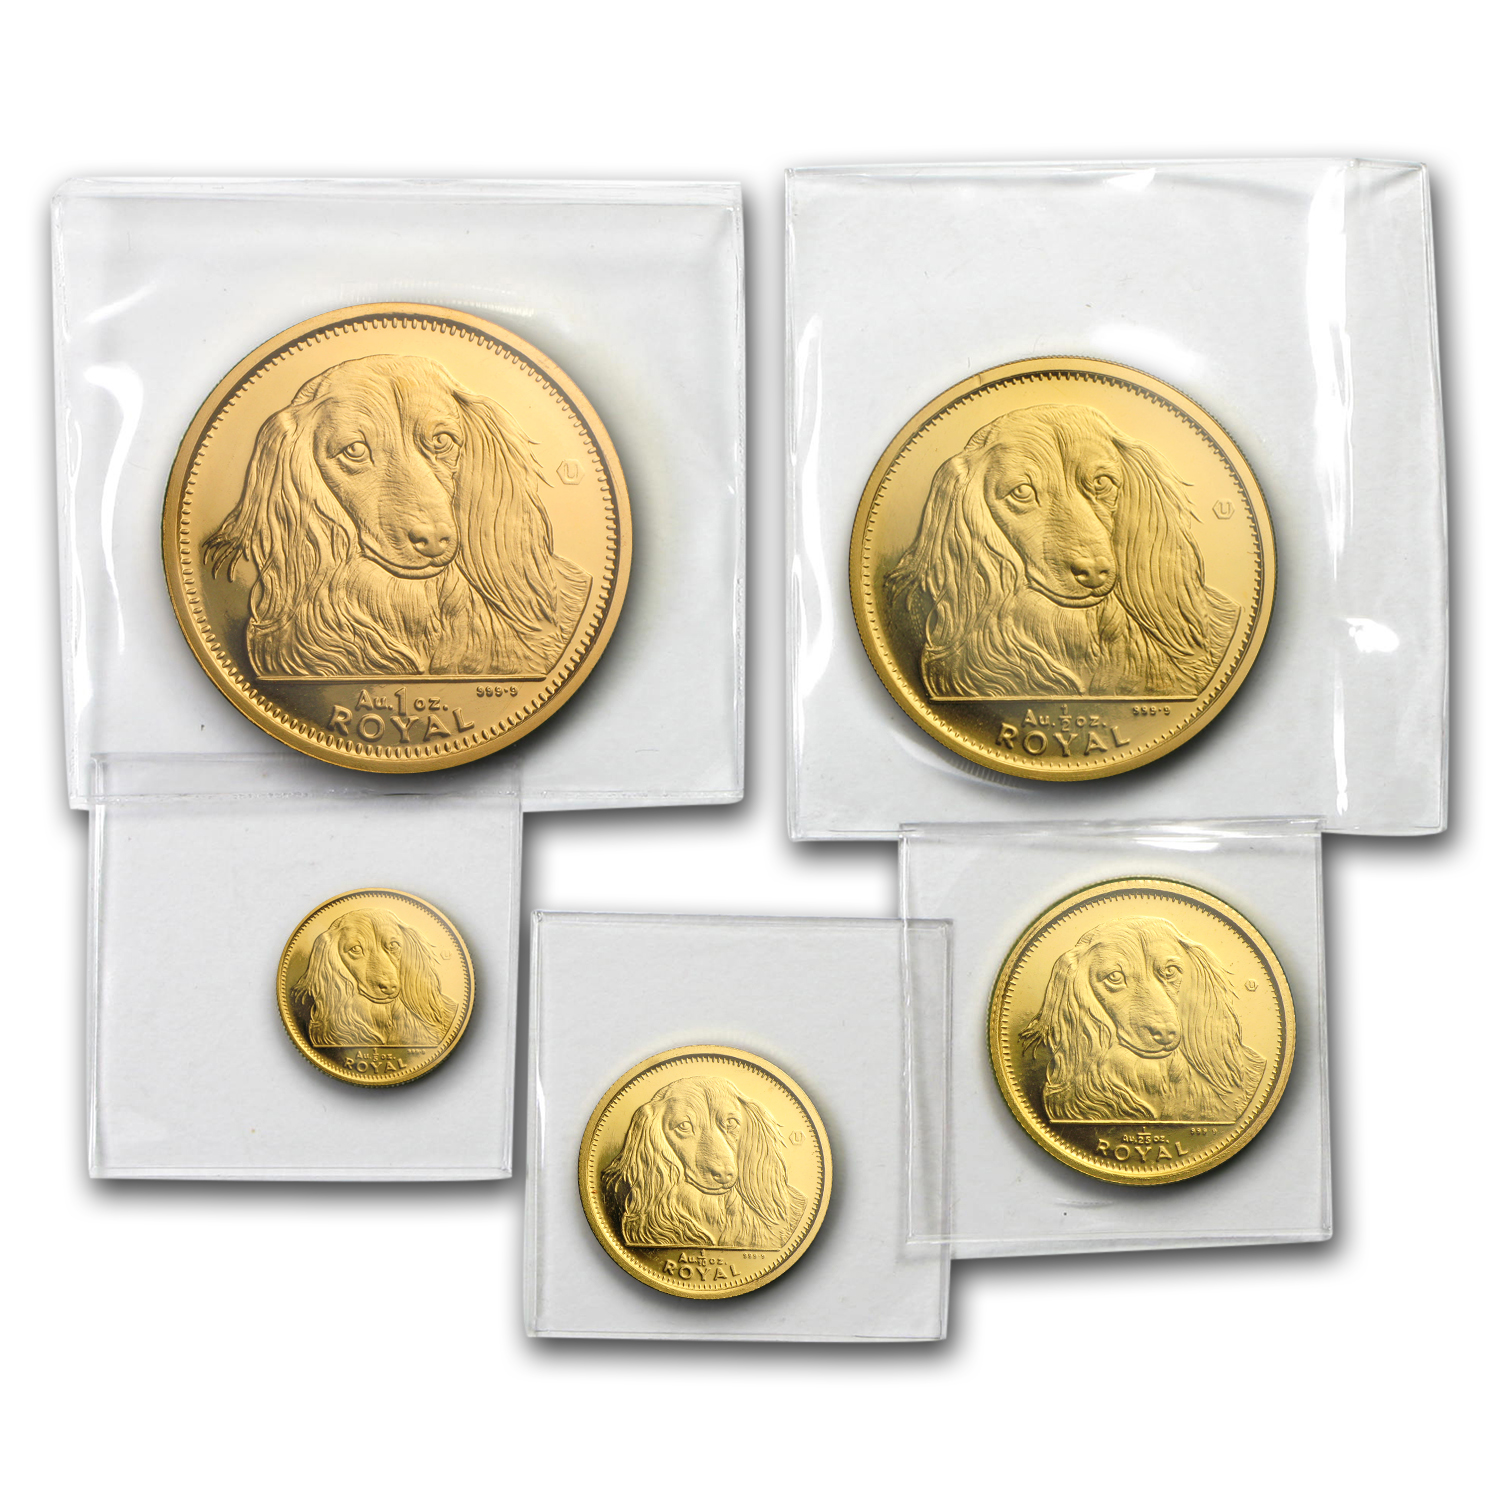 1993 Gibraltar Gold Long Haired Dachshund 5 Coin Set 1.89 oz AGW